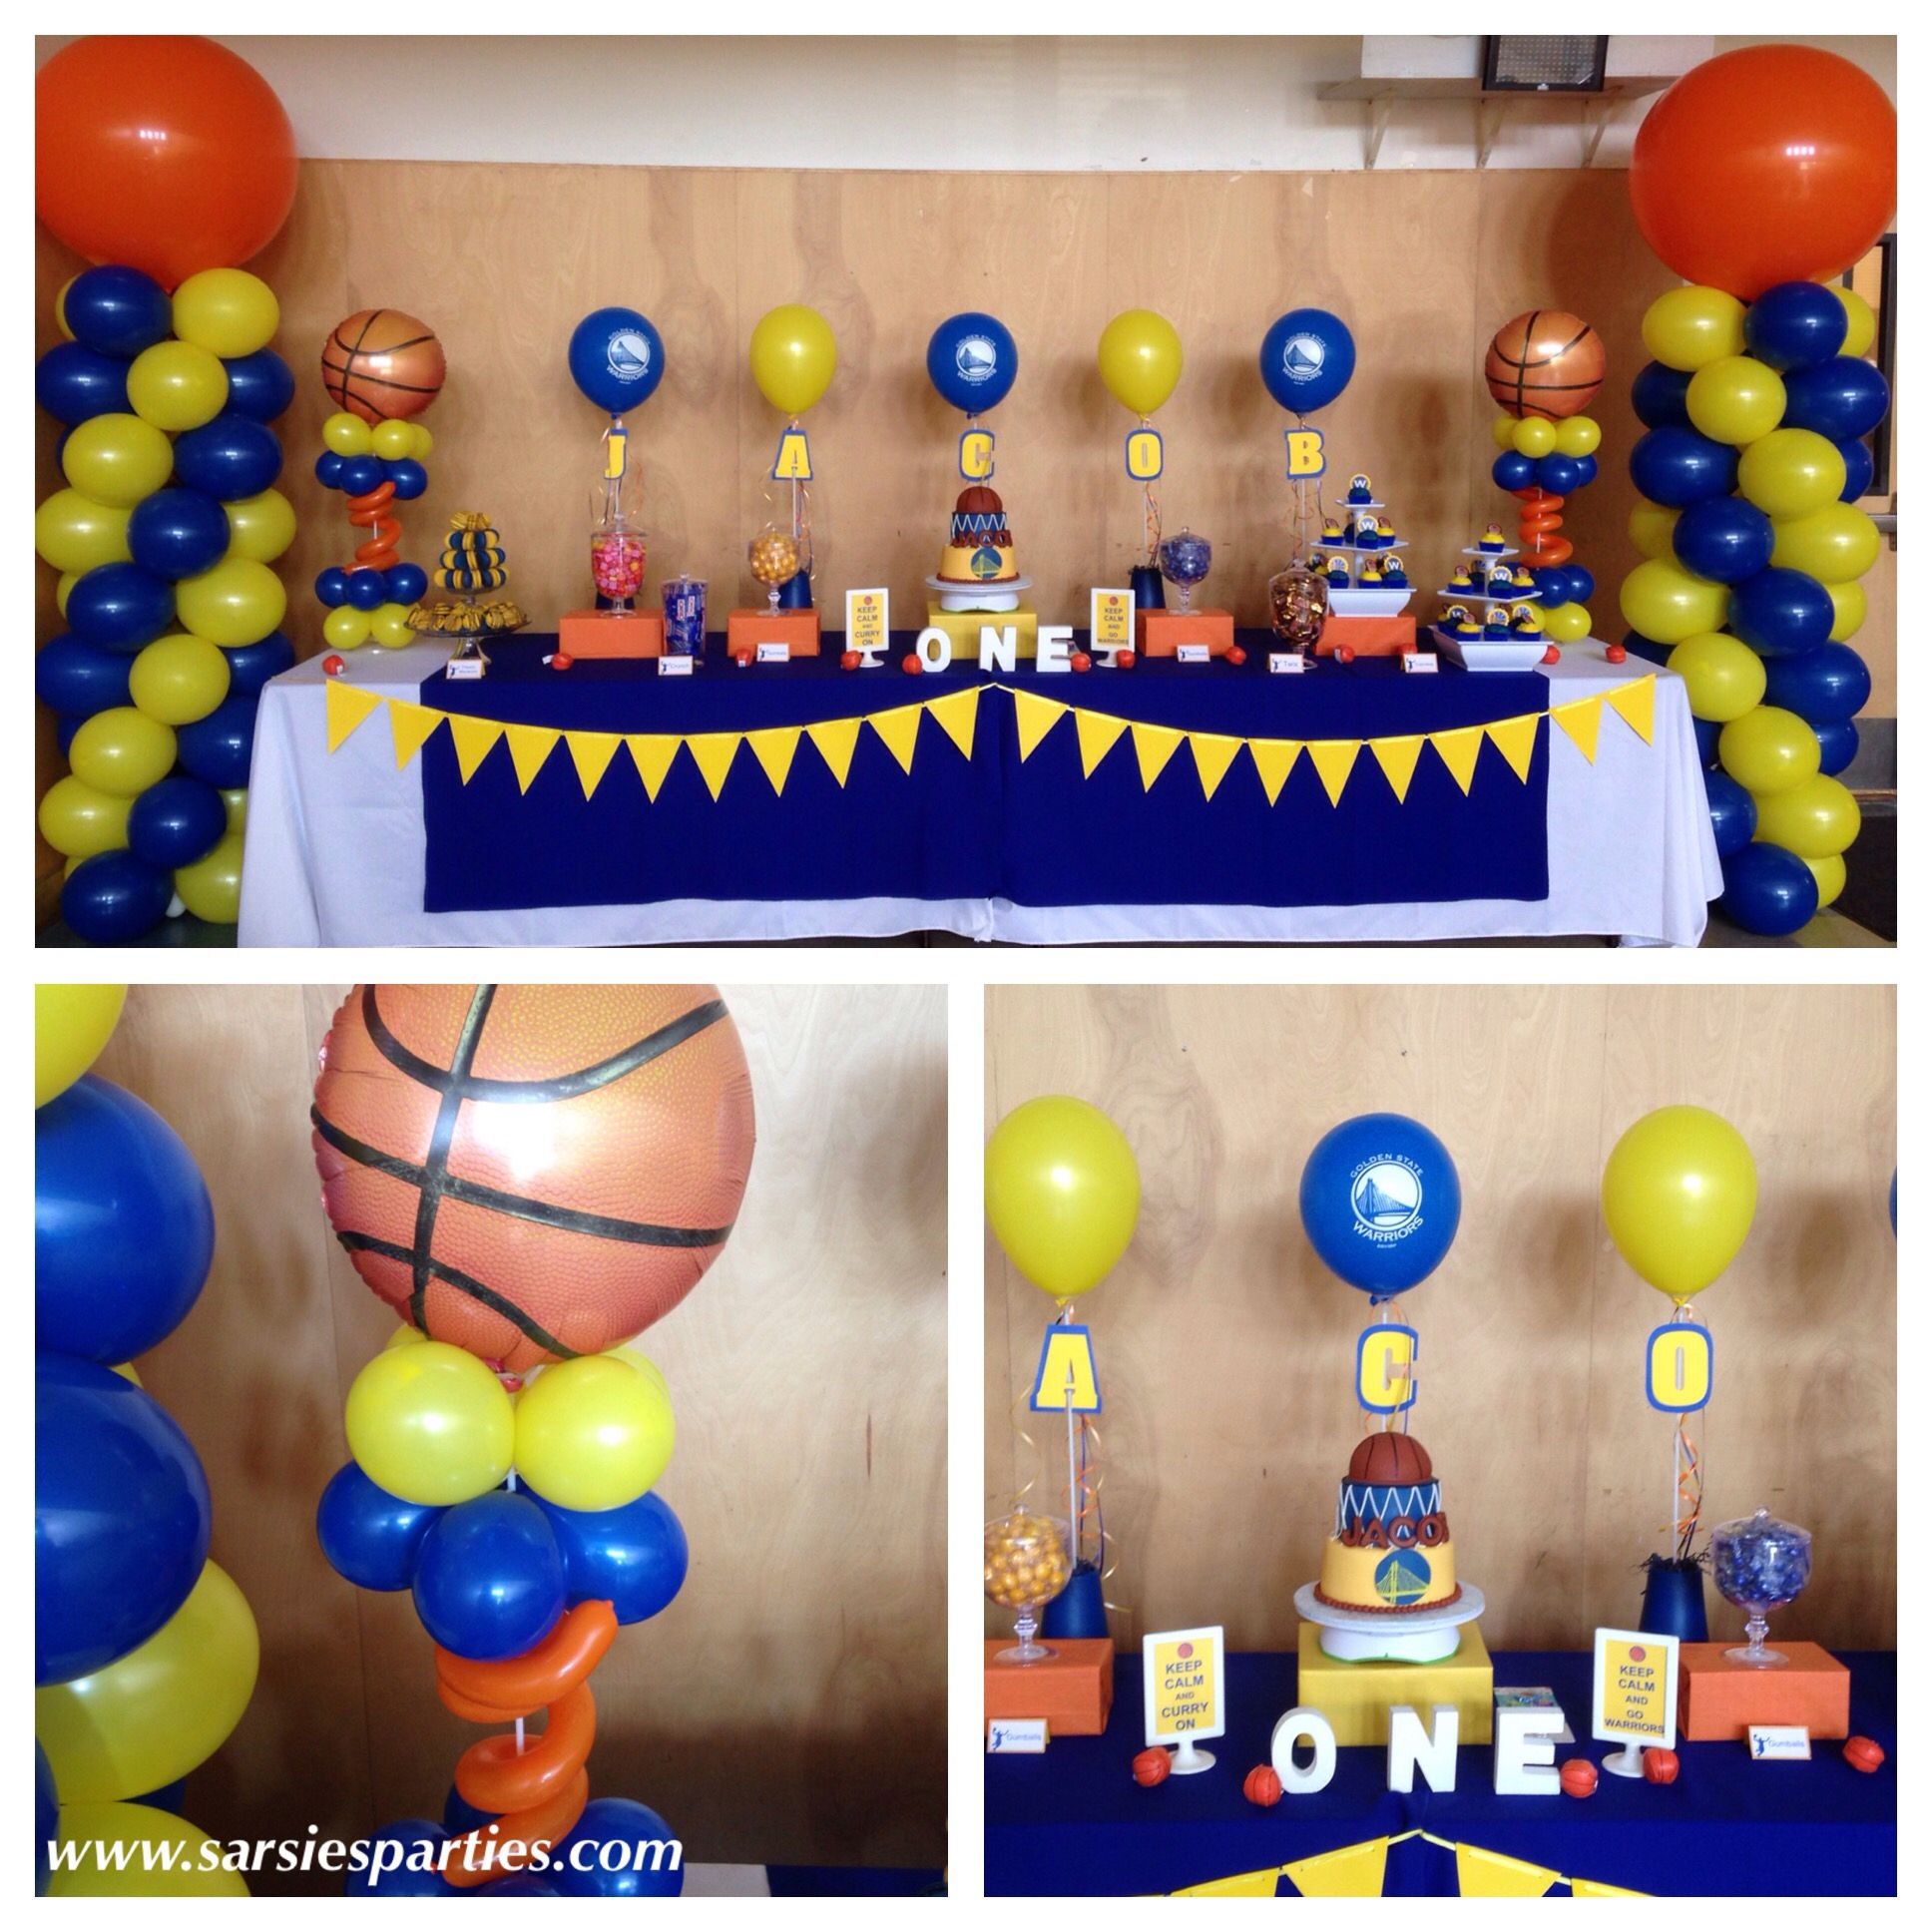 25 Best Ideas About Basketball Decorations On Pinterest: Warriors/basketball Themed Party